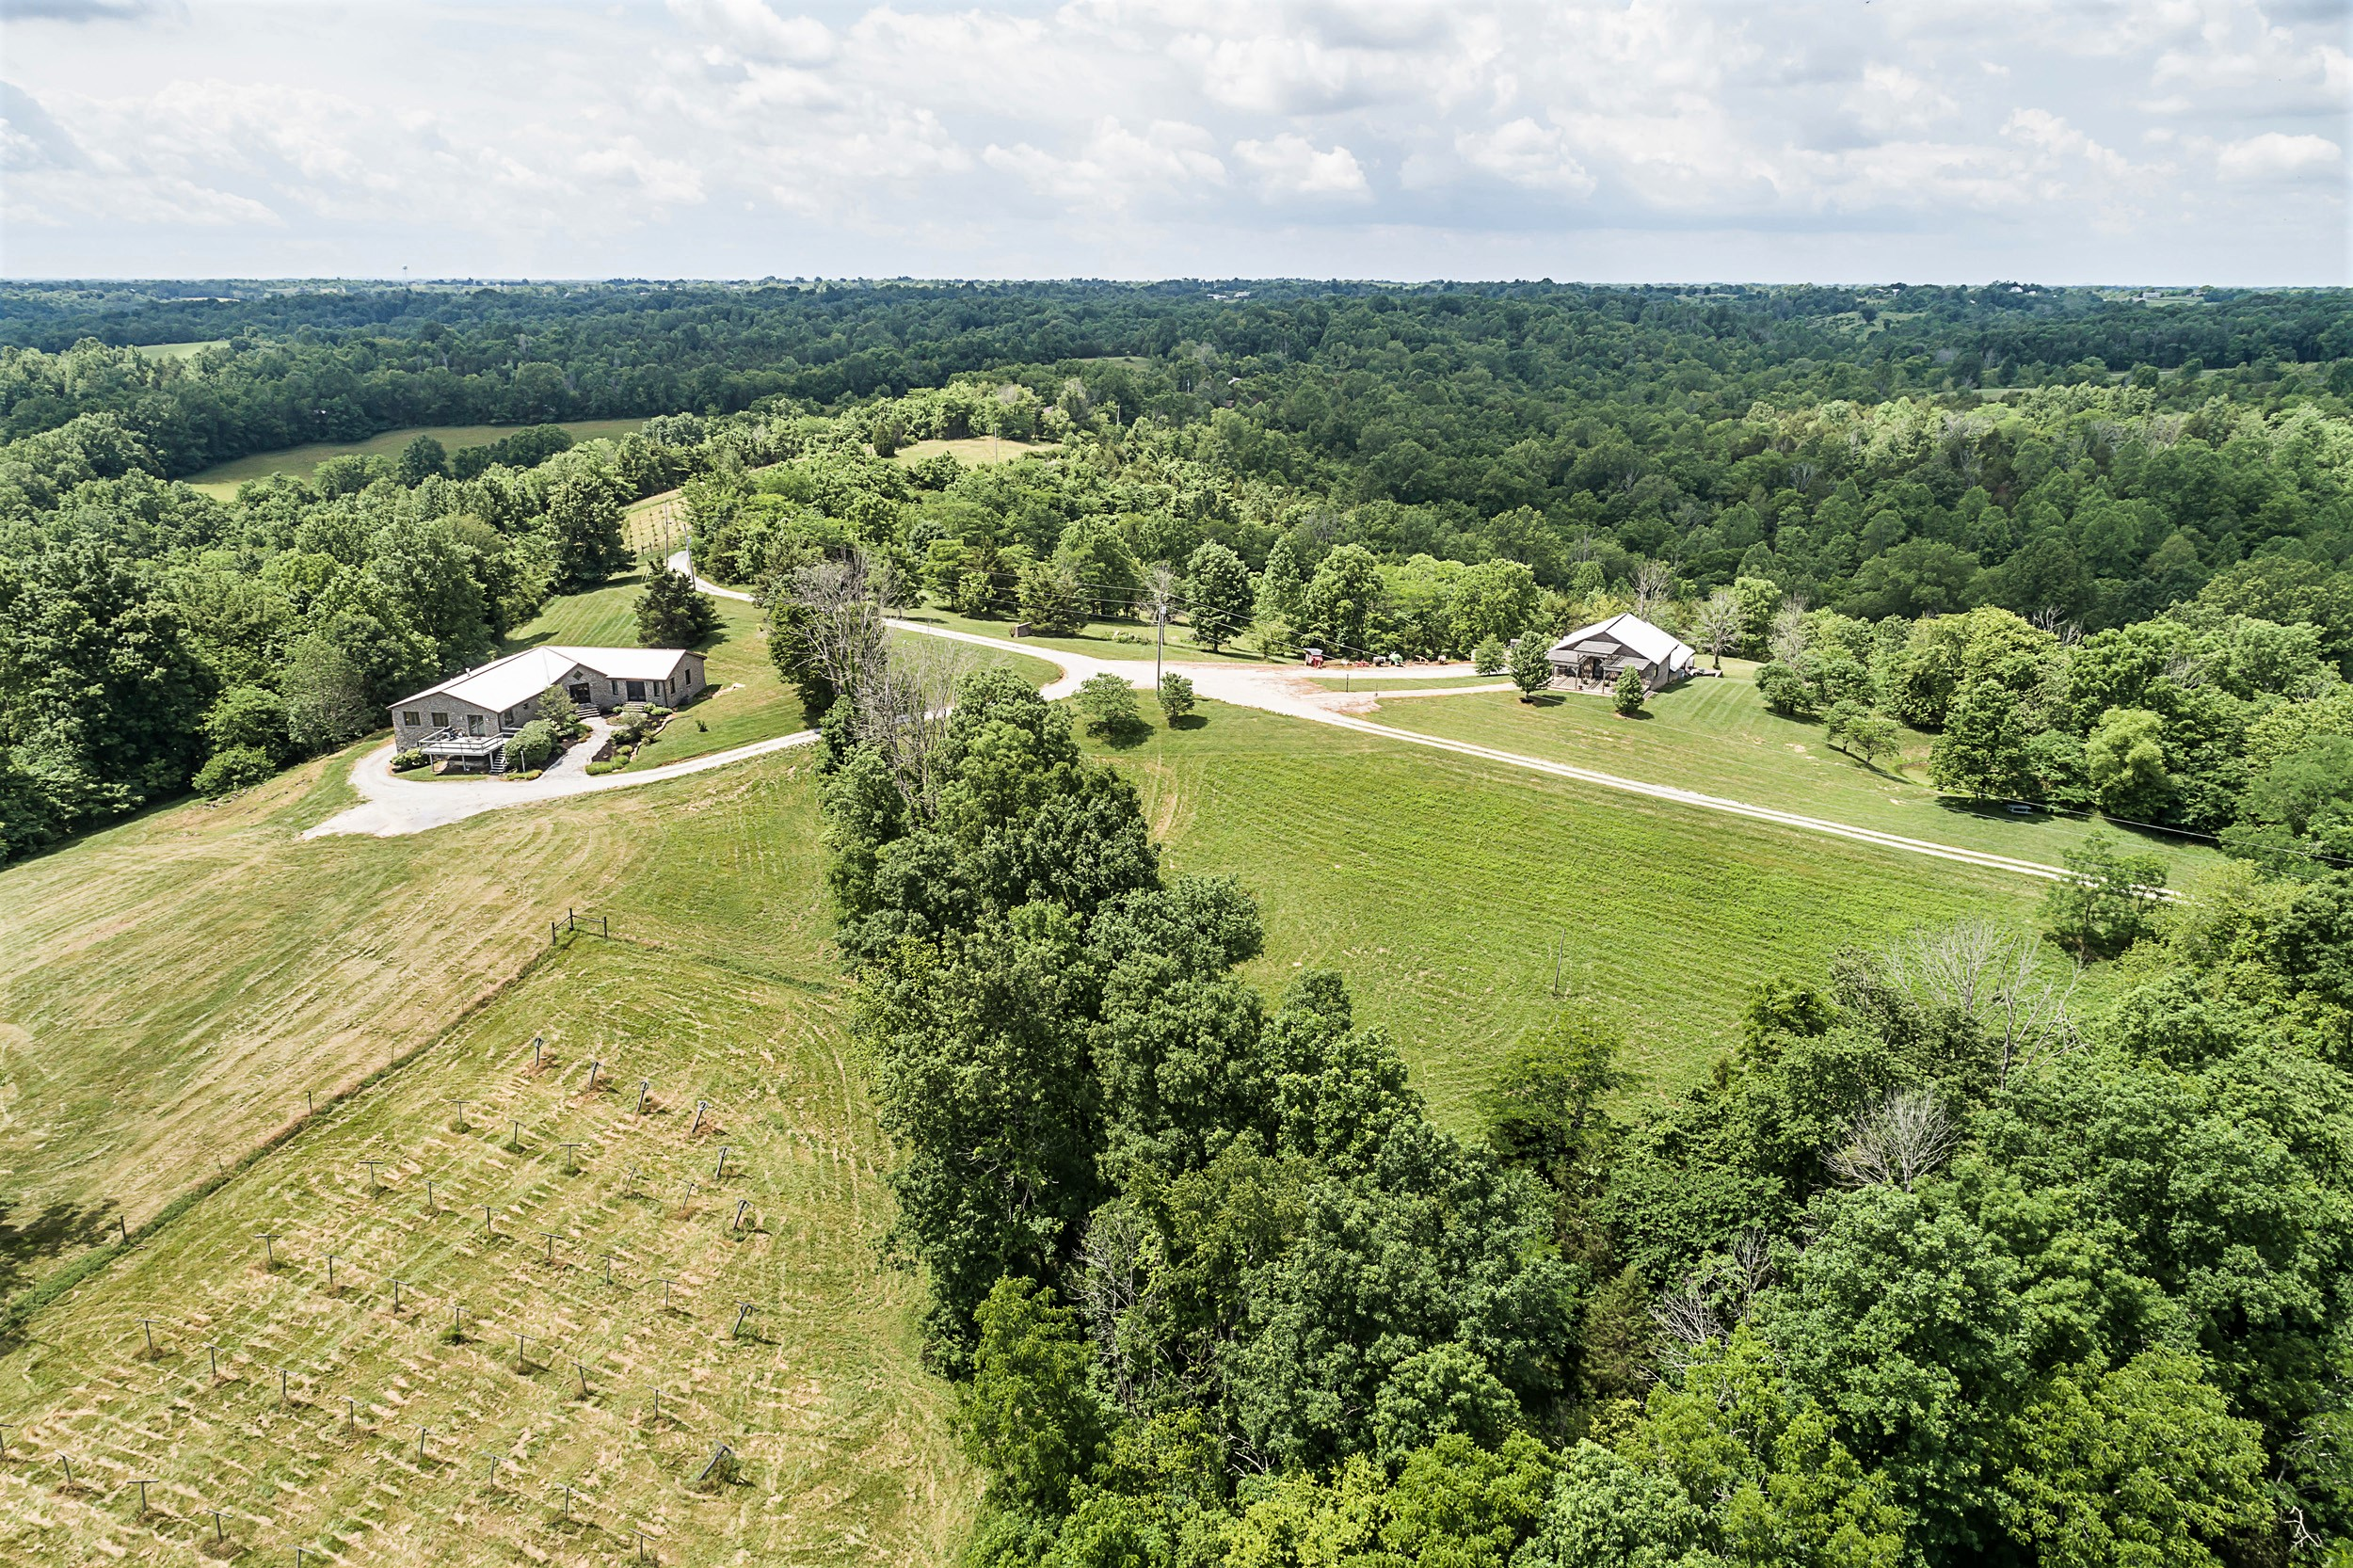 Horseshoe Bend Winery Home, Guest Home & 98.029 Acres (+/-) 1187 Lawson Lane – Willisburg